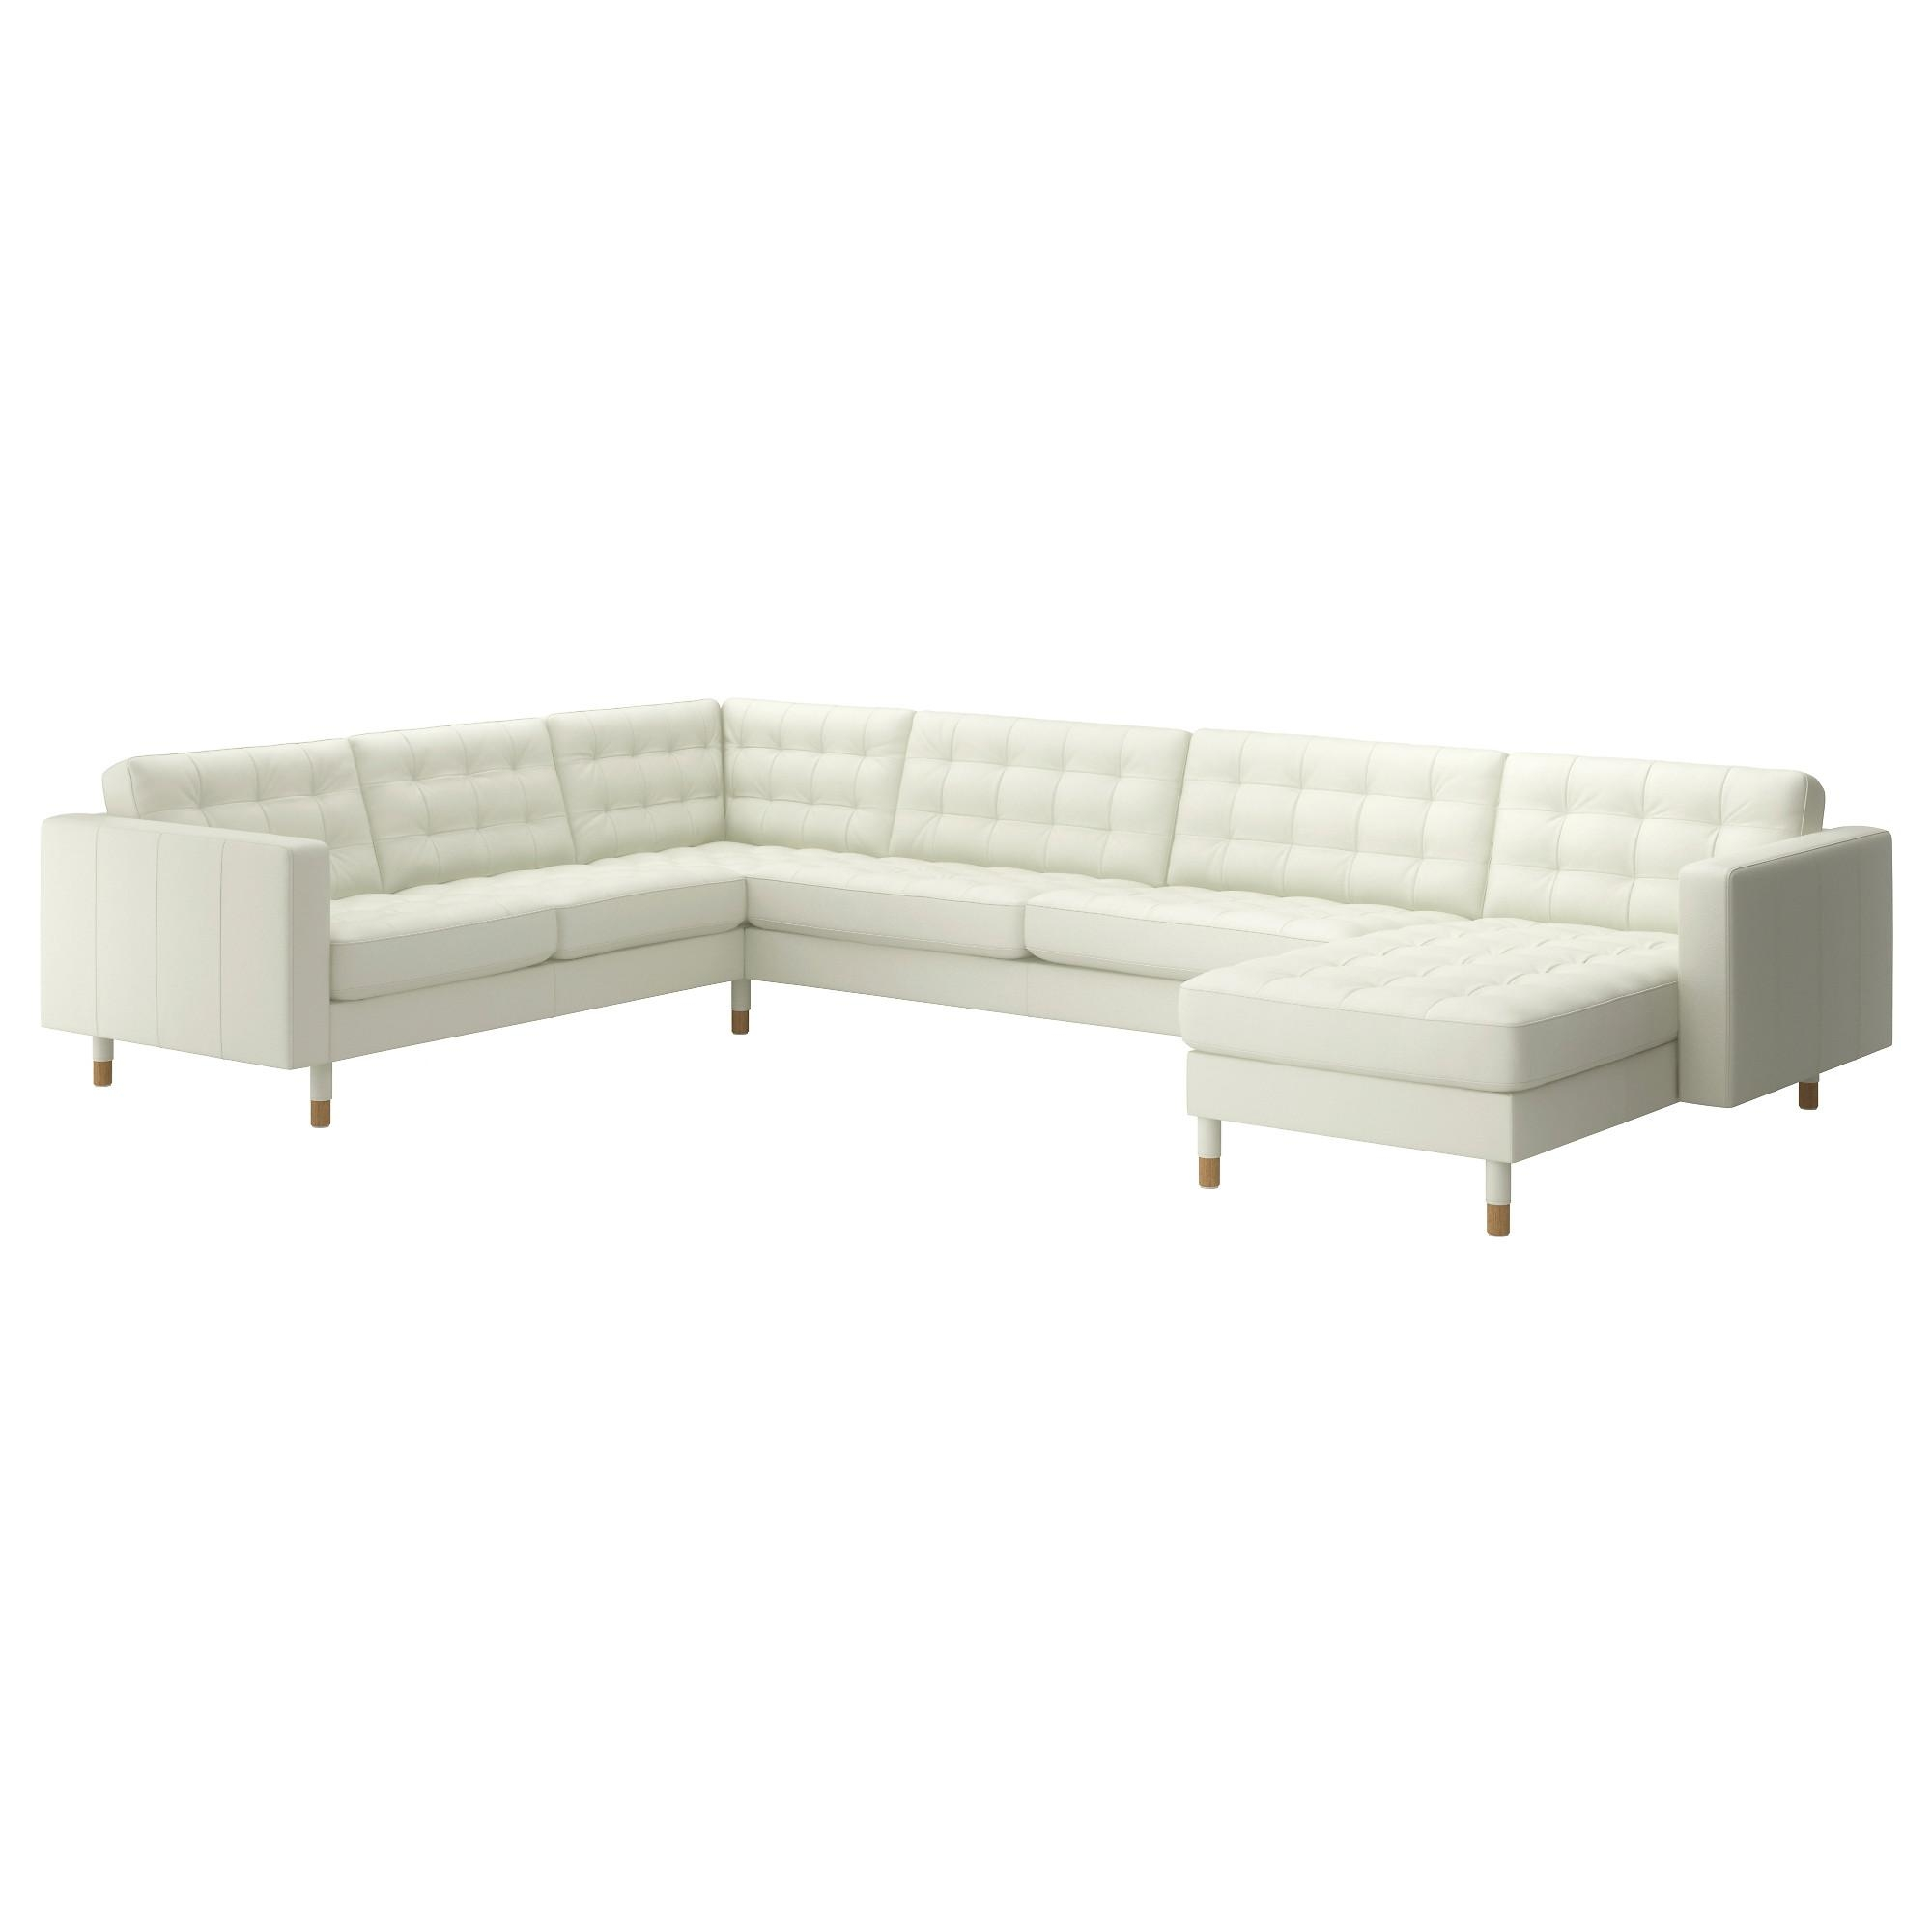 Leather & Faux Leather Couches, Chairs & Ottomans – Ikea Intended For White Sofa Chairs (View 17 of 20)